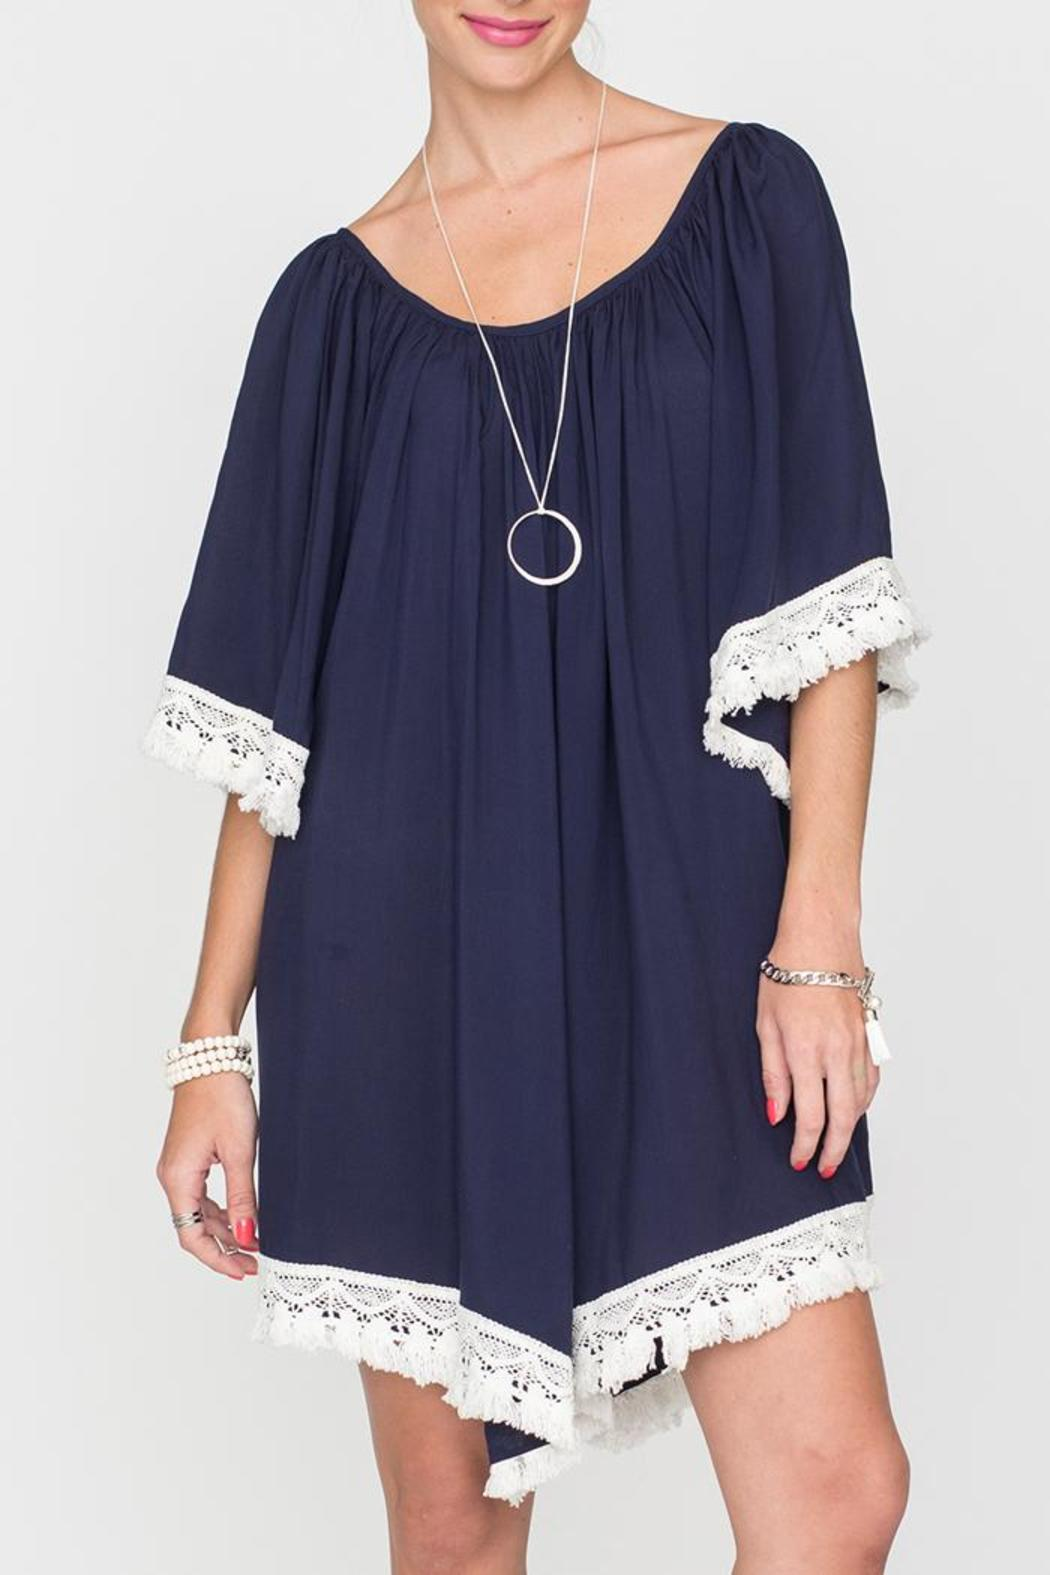 2 Chic Luxe Off-Shoulder Navy Dress - Main Image